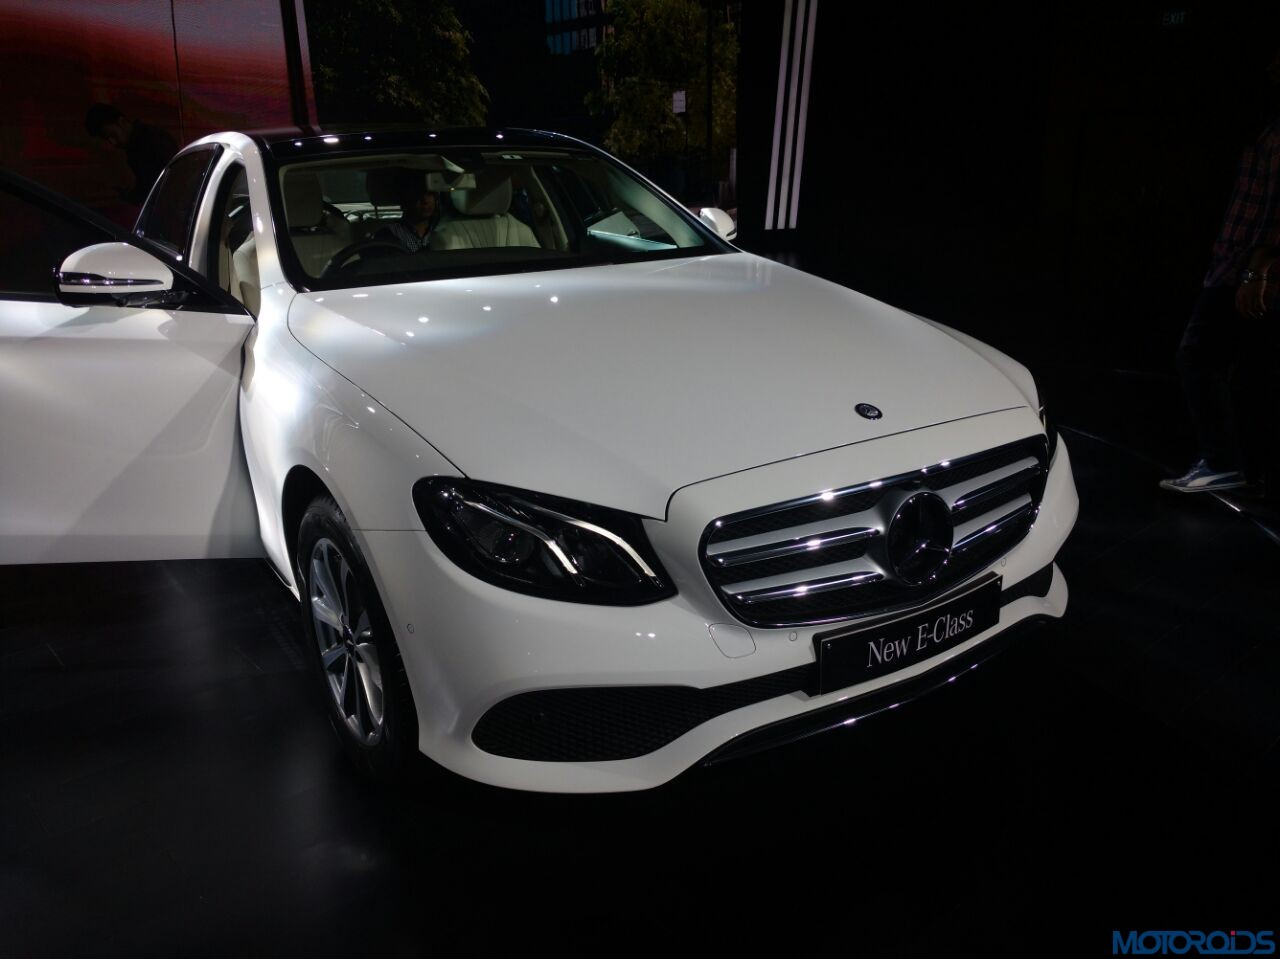 new mercedes benz e class lwb launched in india at inr 56